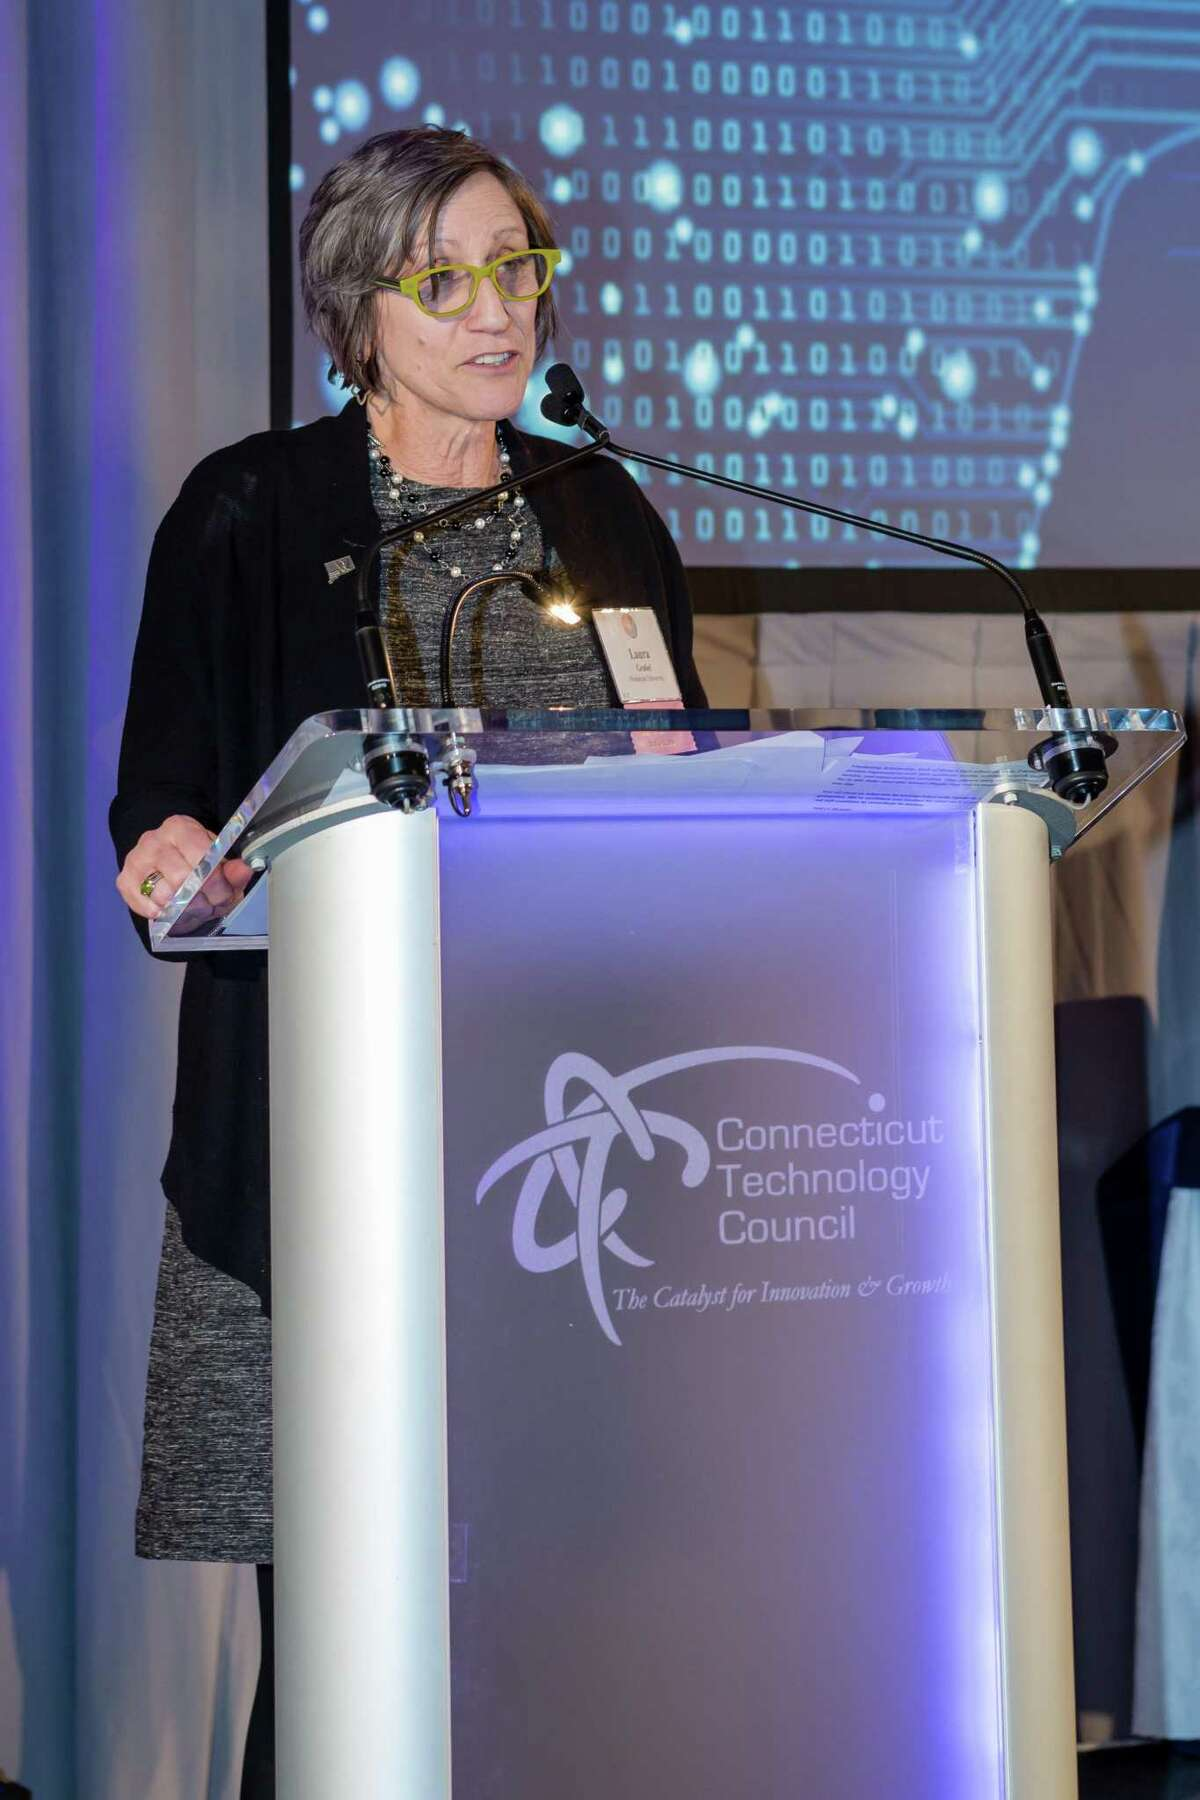 Laurel Grable, the Laura B. Dachs chair of science and society at Wesleyan University, was honored for her leadership at the Connecticut Technology Council Women of Innovation Awards March 27.